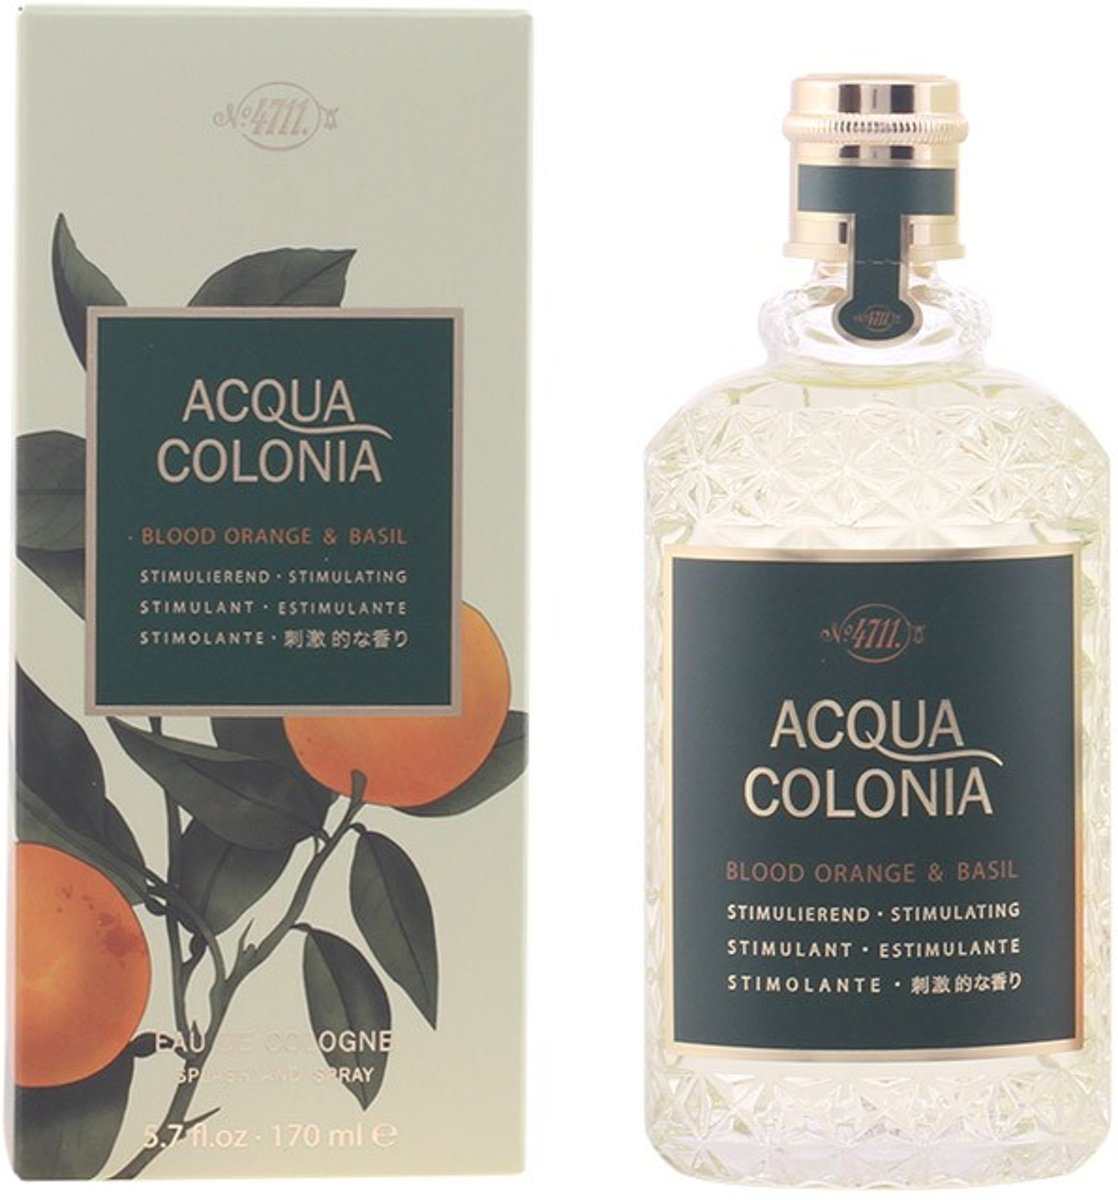 PROMO 2 stuks - 4711 - ACQUA cologne Blood Orange & Basil - eau de cologne - spray 170 ml